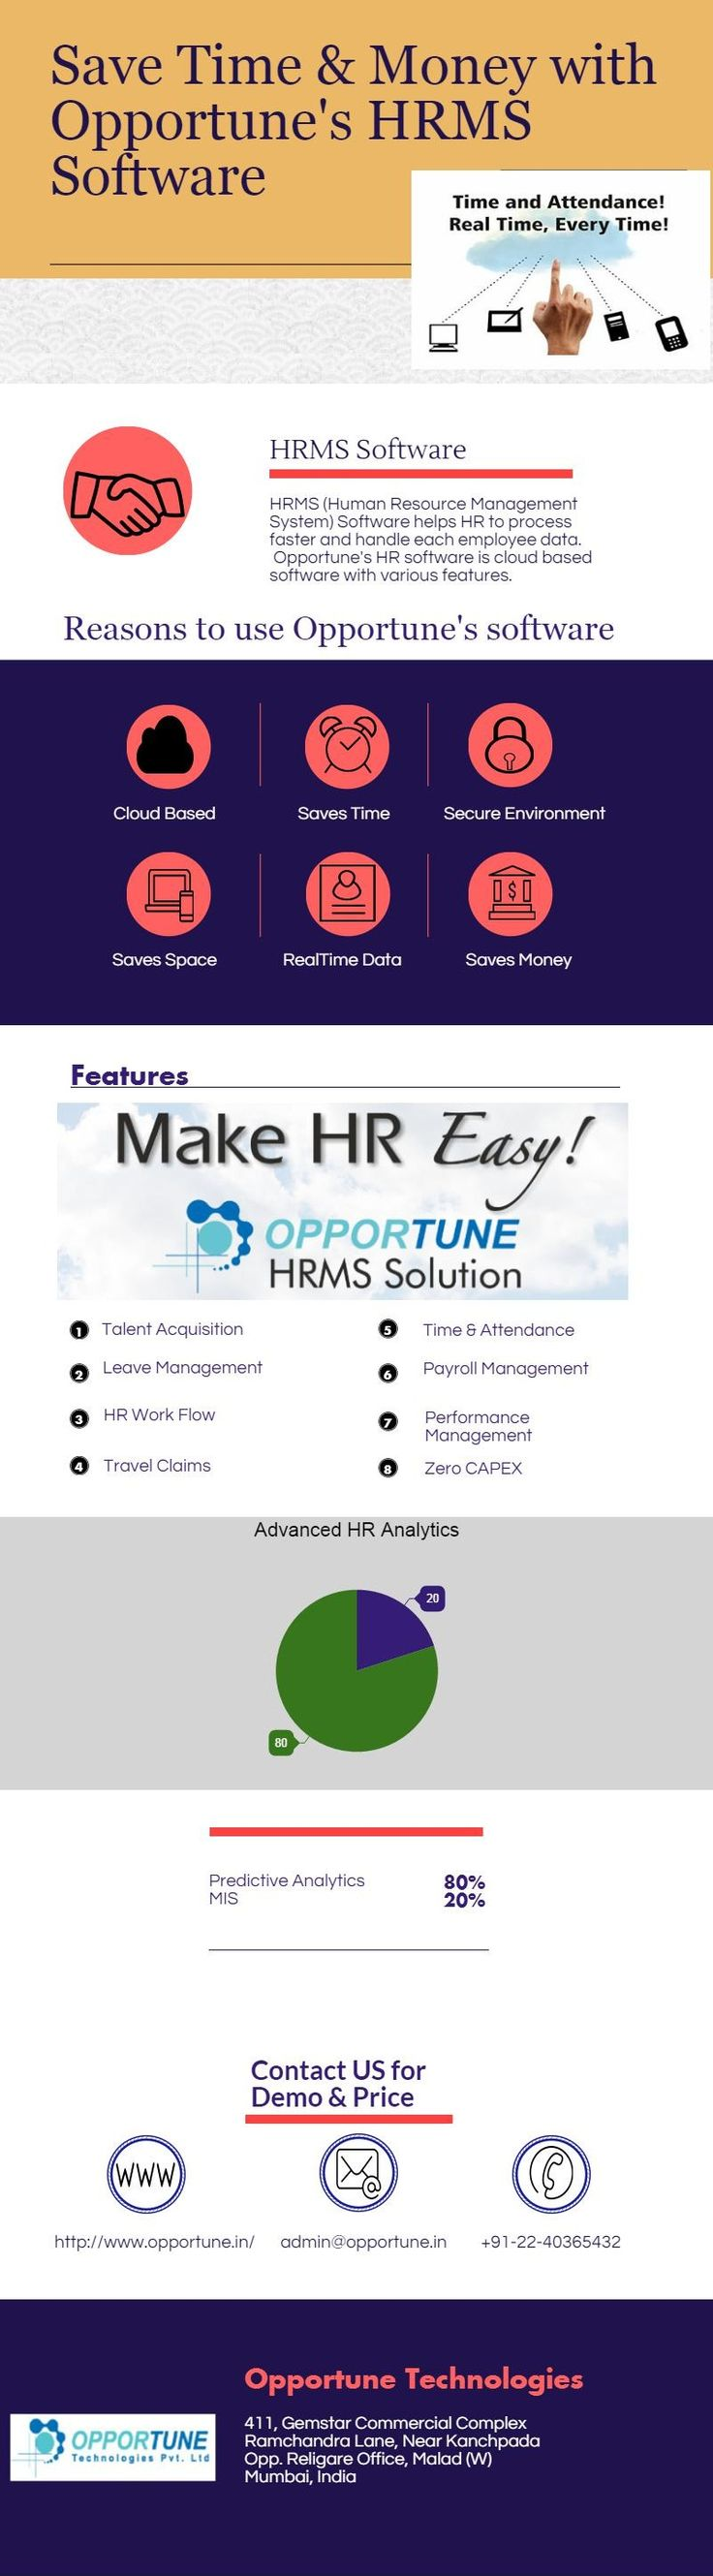 If you are looking for HRMS software ? We are leading provider of HR Software and Analytics at best price.   http://www.opportune.in/opt-hrms-software/